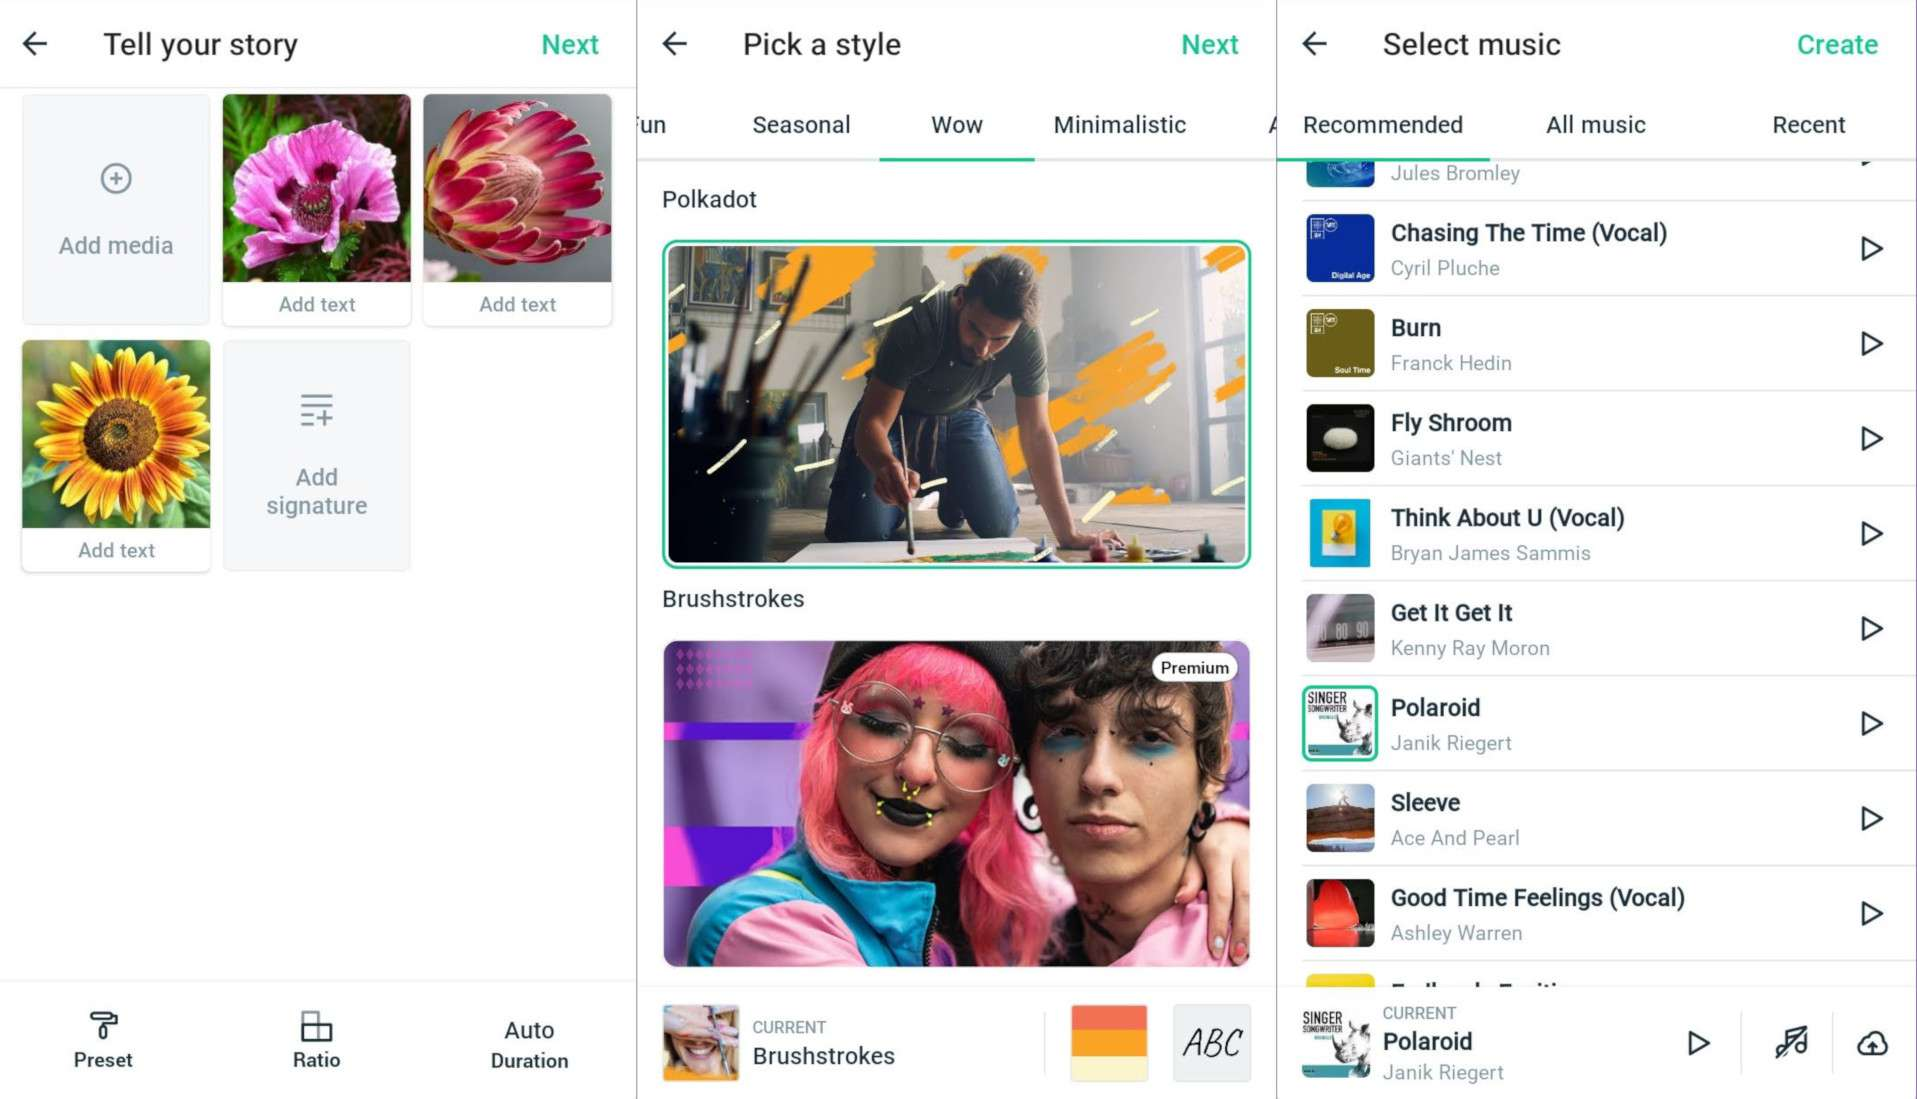 Add photos, choose a style, and select music for a Magisto slideshow